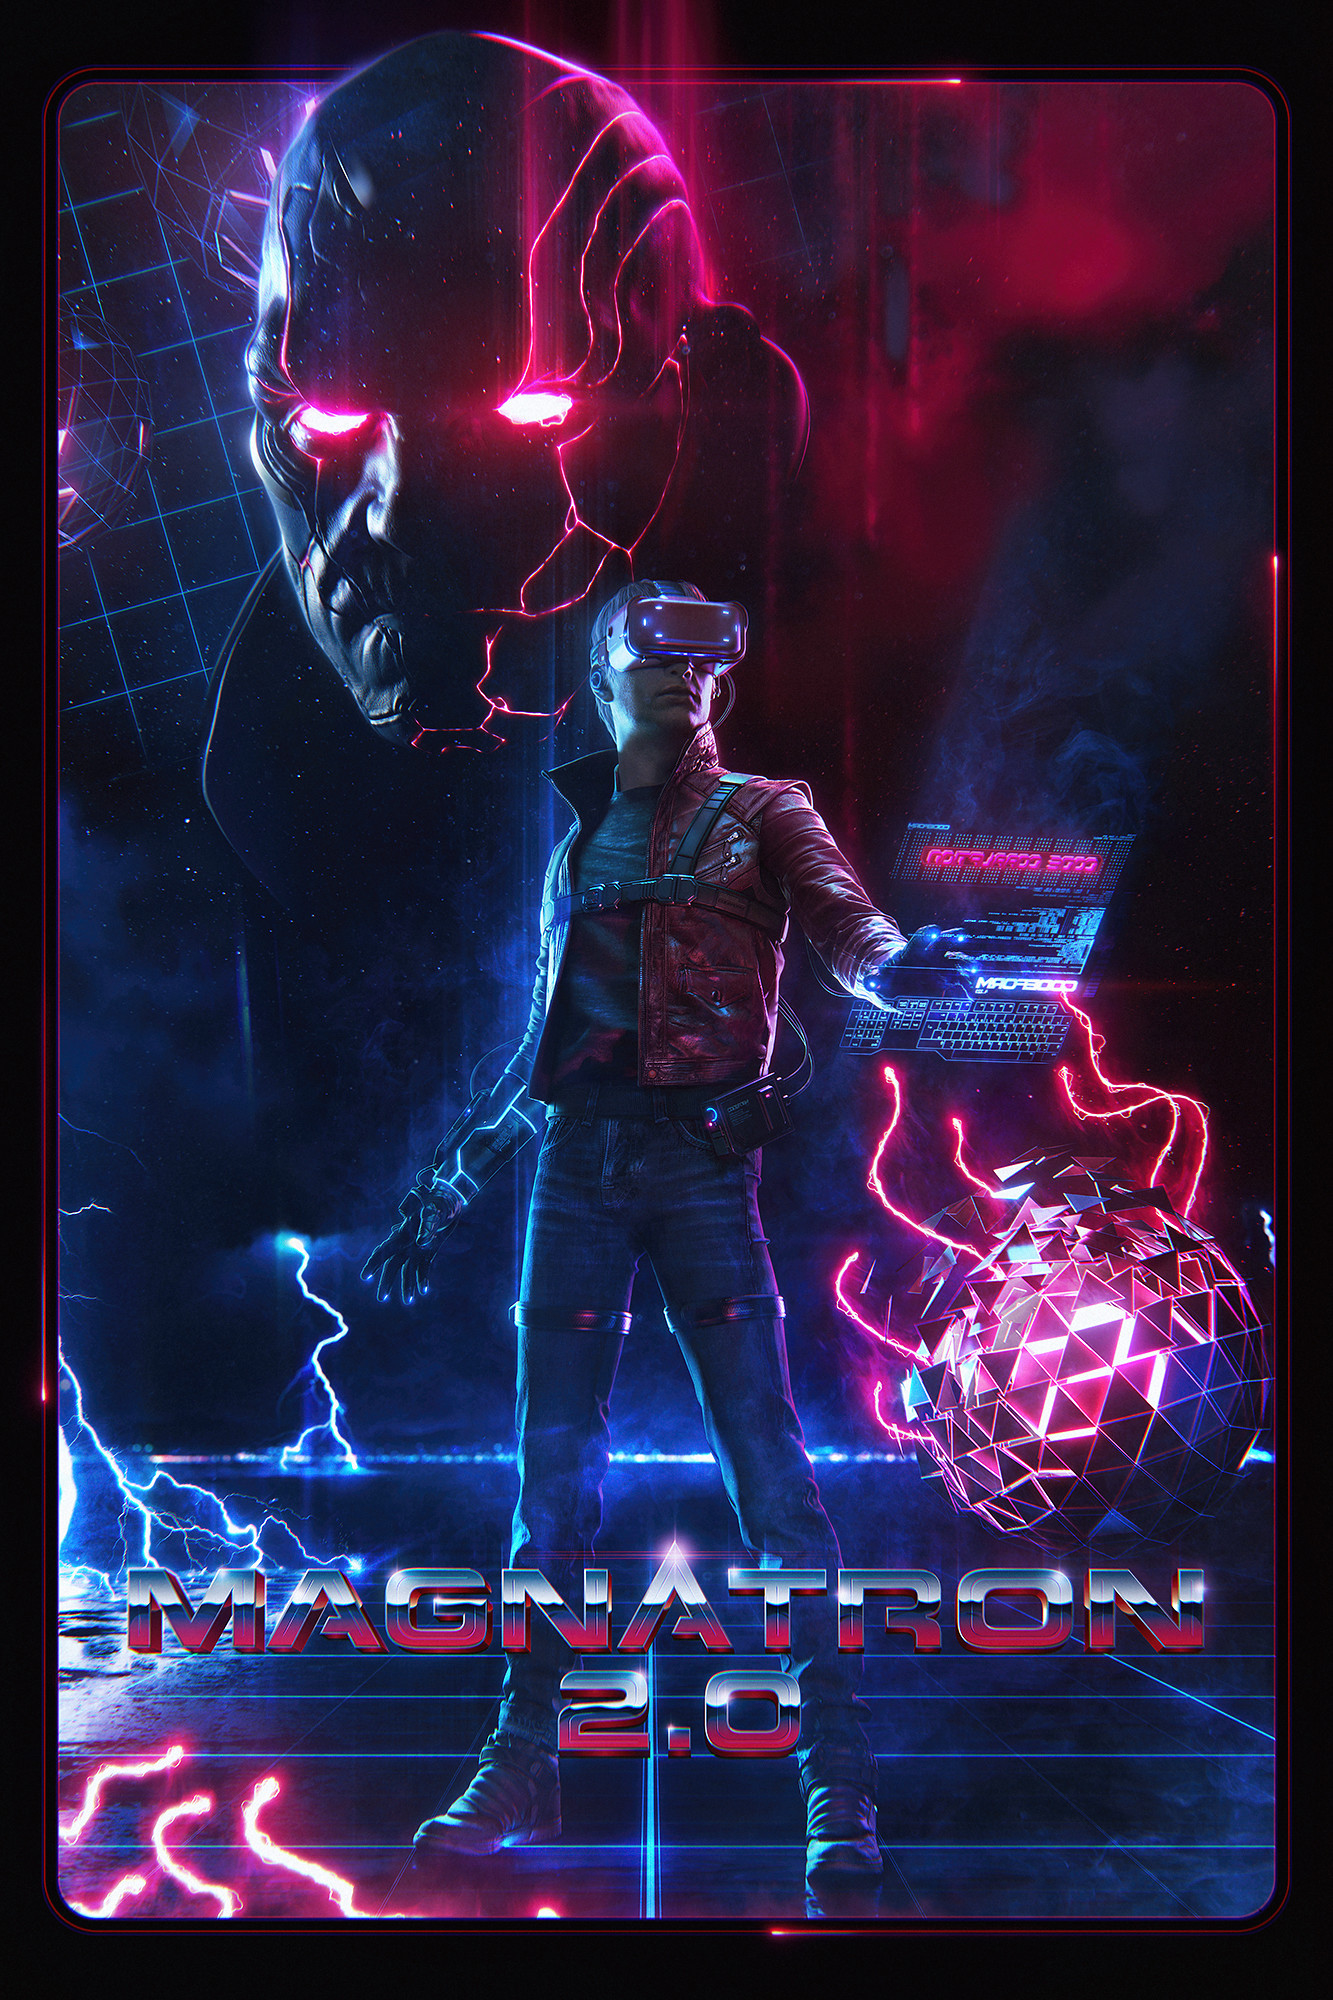 Jeronimo gomez magnatron 2 poster small final version 4 post